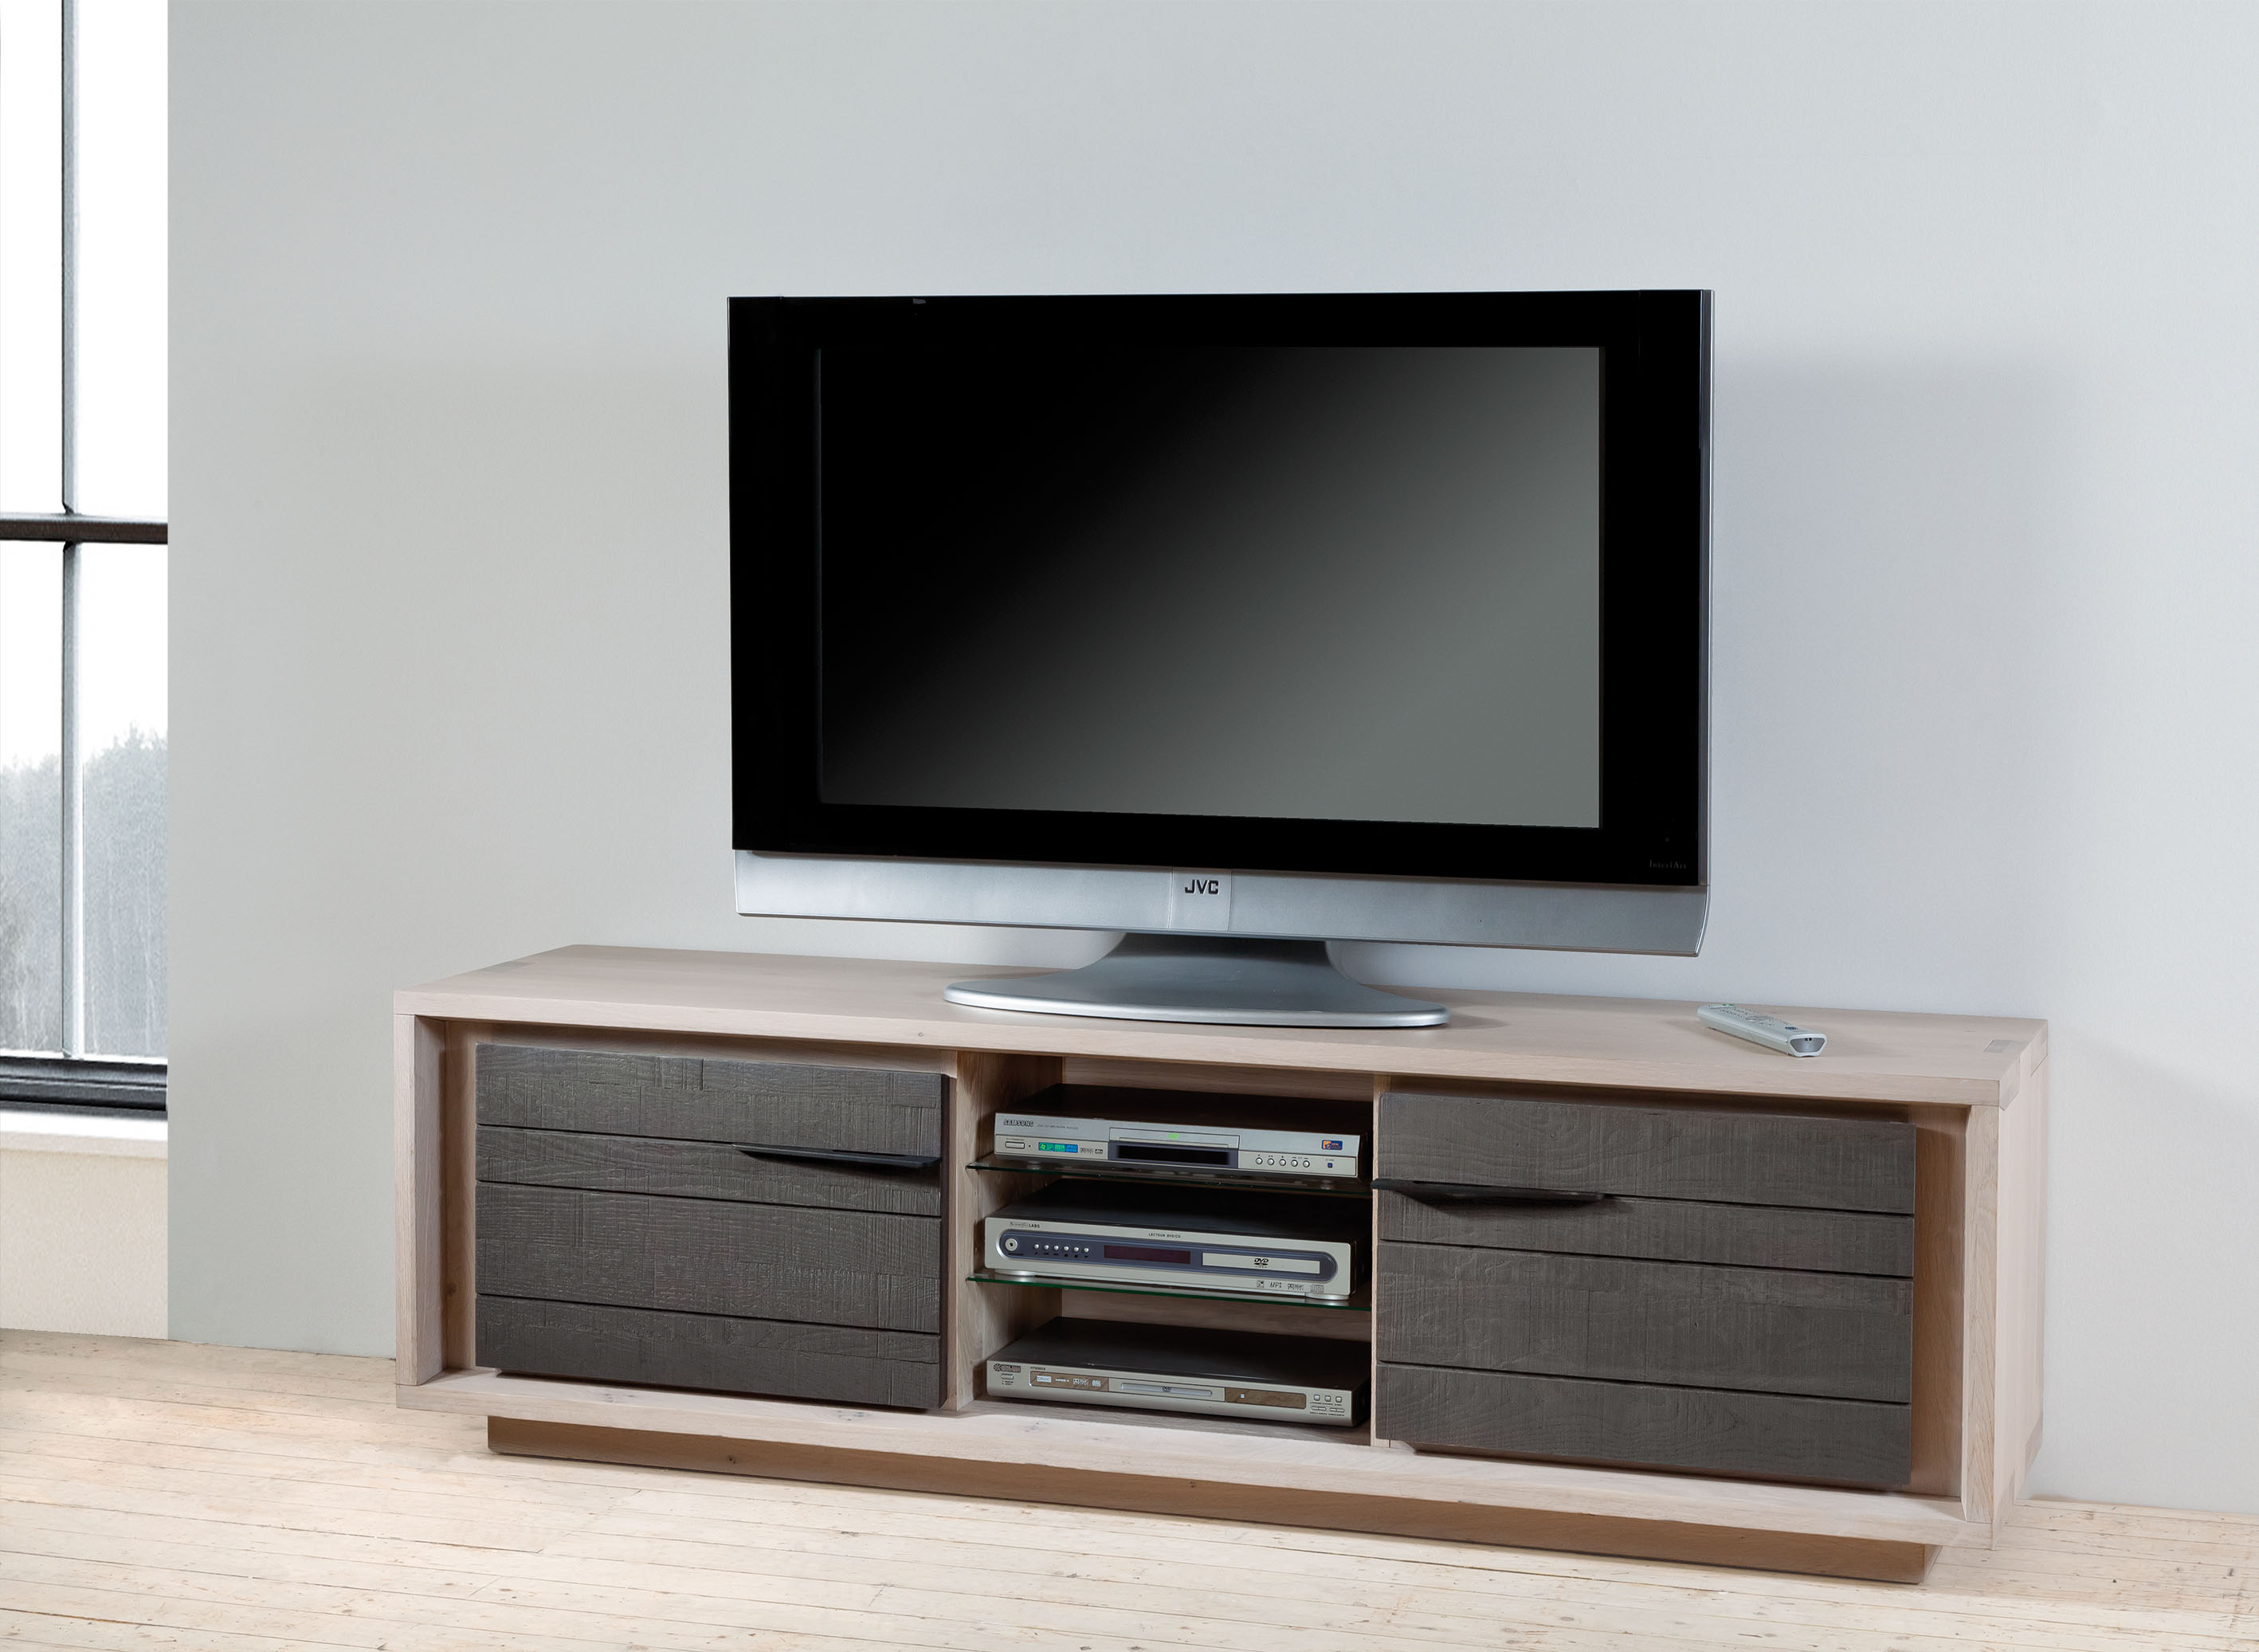 Meuble tv grand mod le zenith meubles turone for Meuble turone